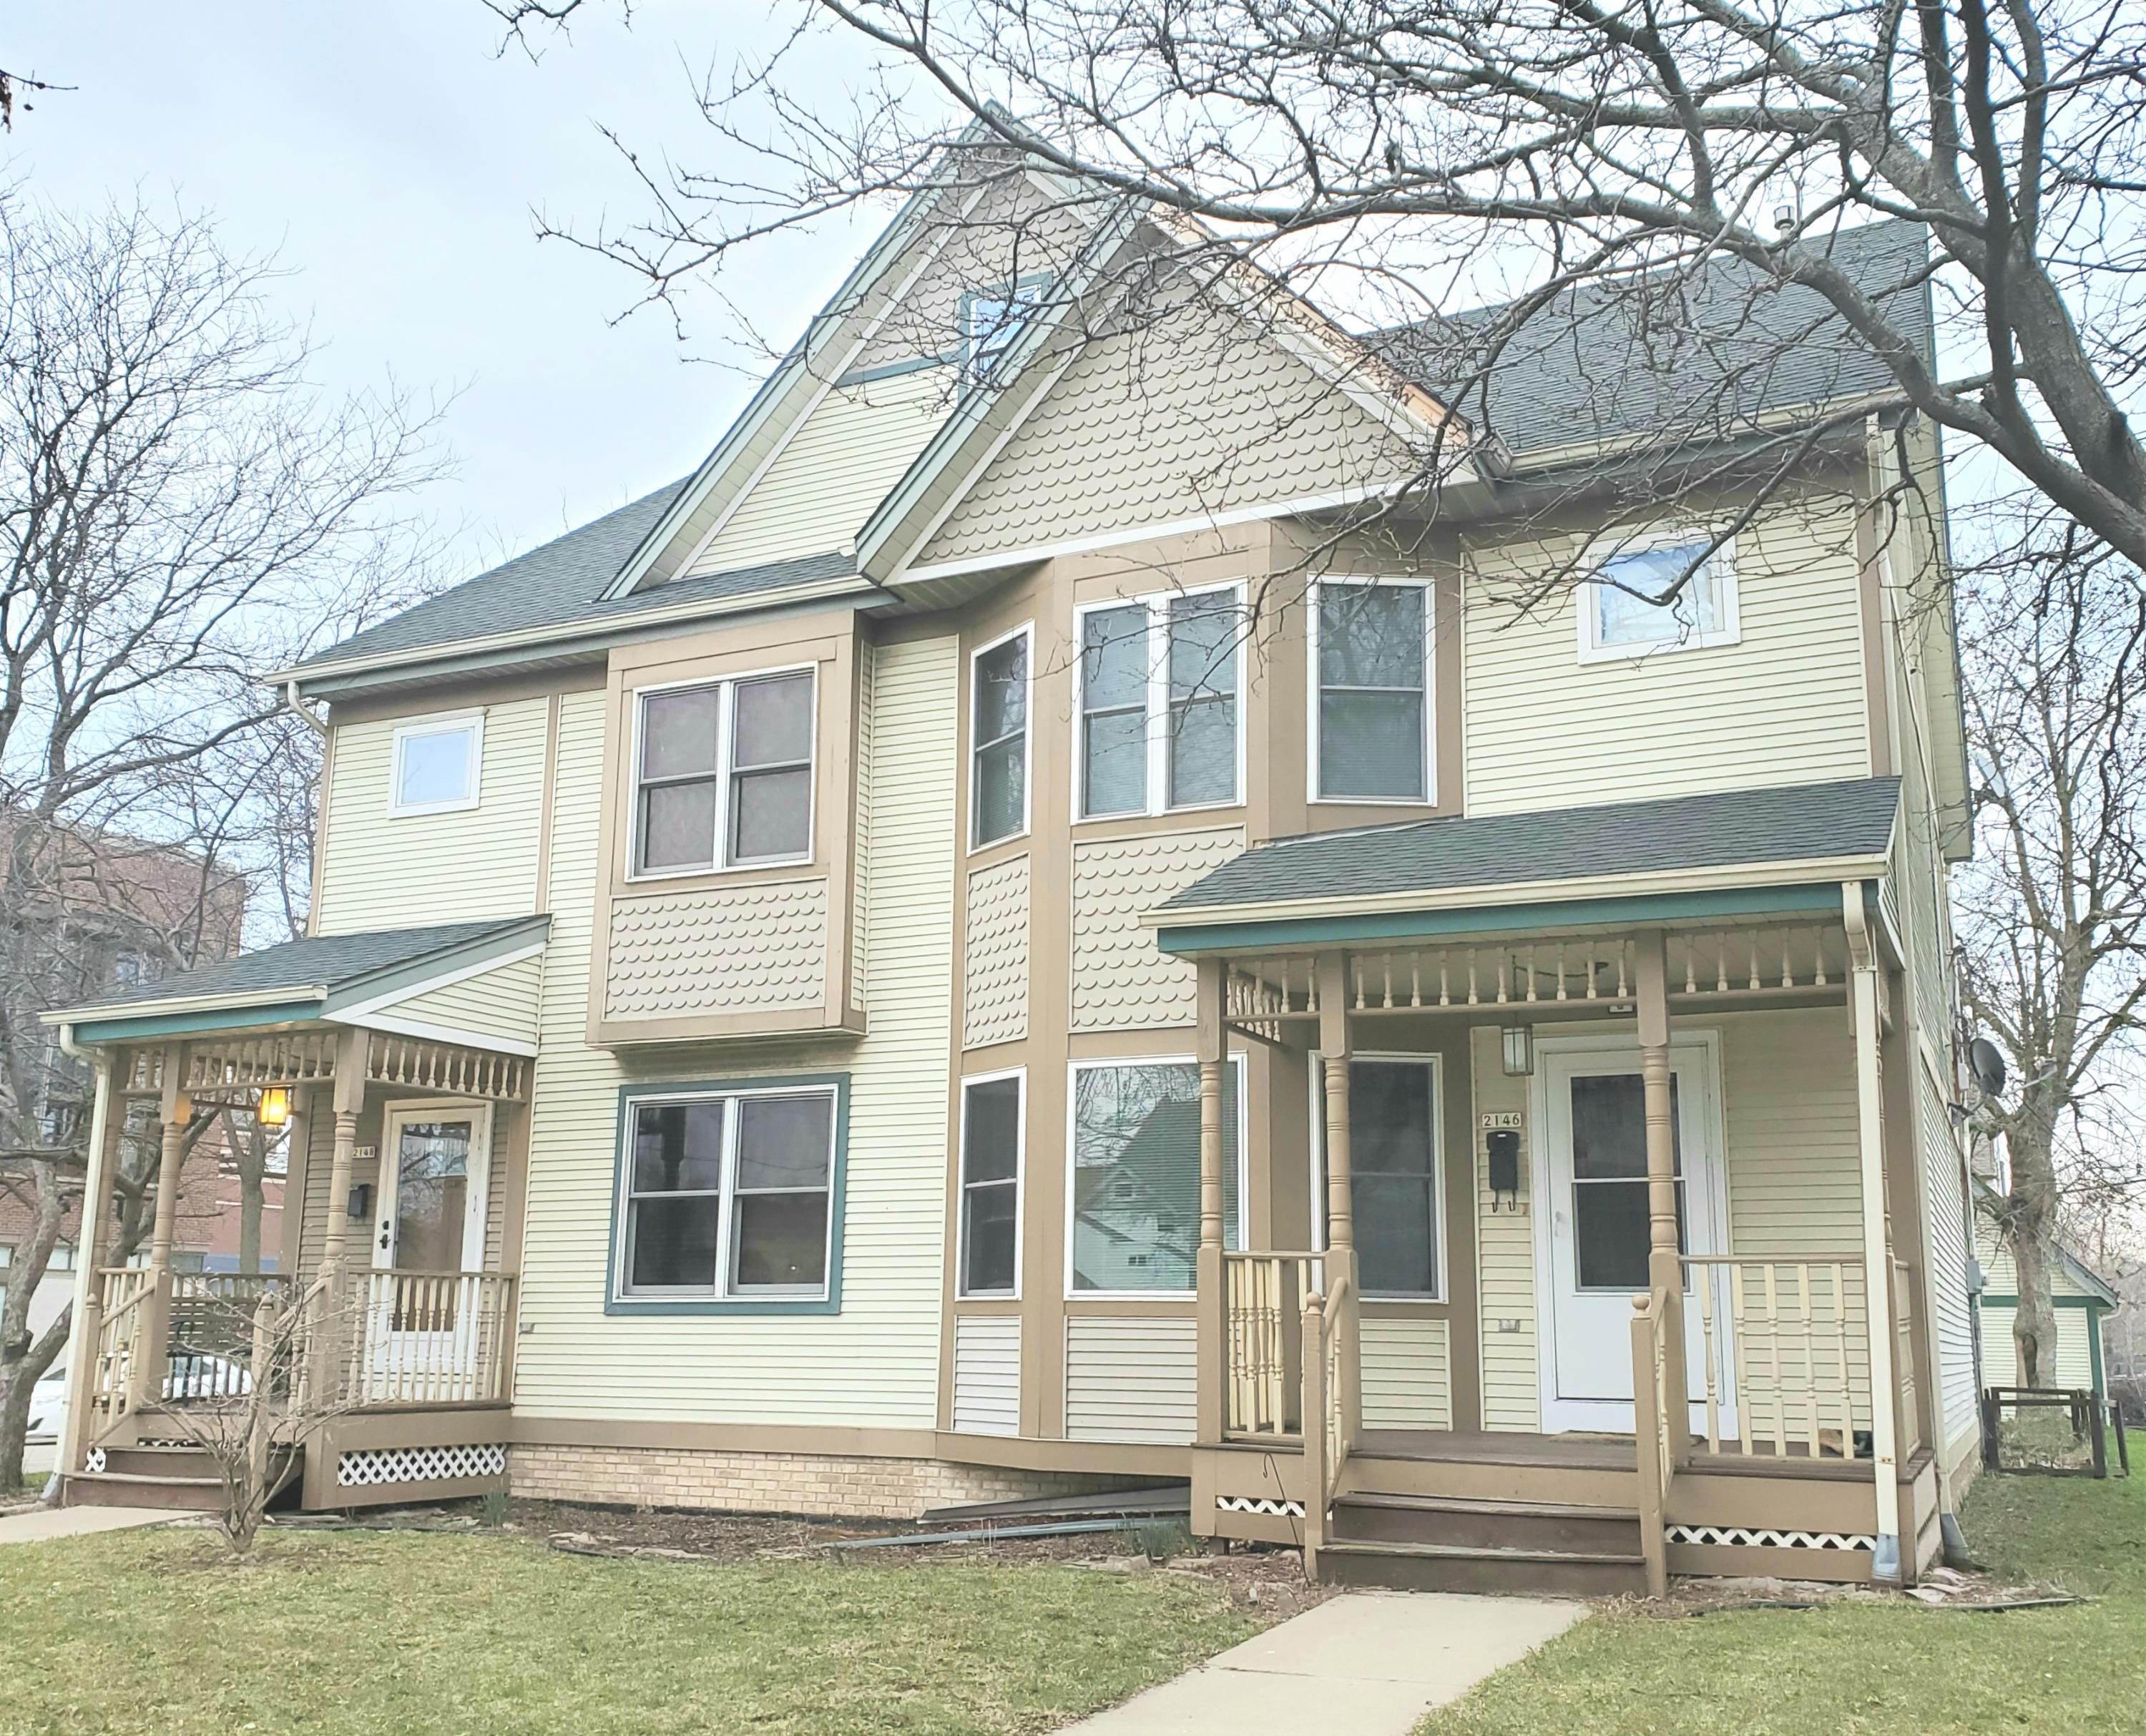 2146 1st St, Milwaukee, Wisconsin 53212, 3 Bedrooms Bedrooms, 5 Rooms Rooms,1 BathroomBathrooms,Condominiums,For Sale,1st St,1,1632417